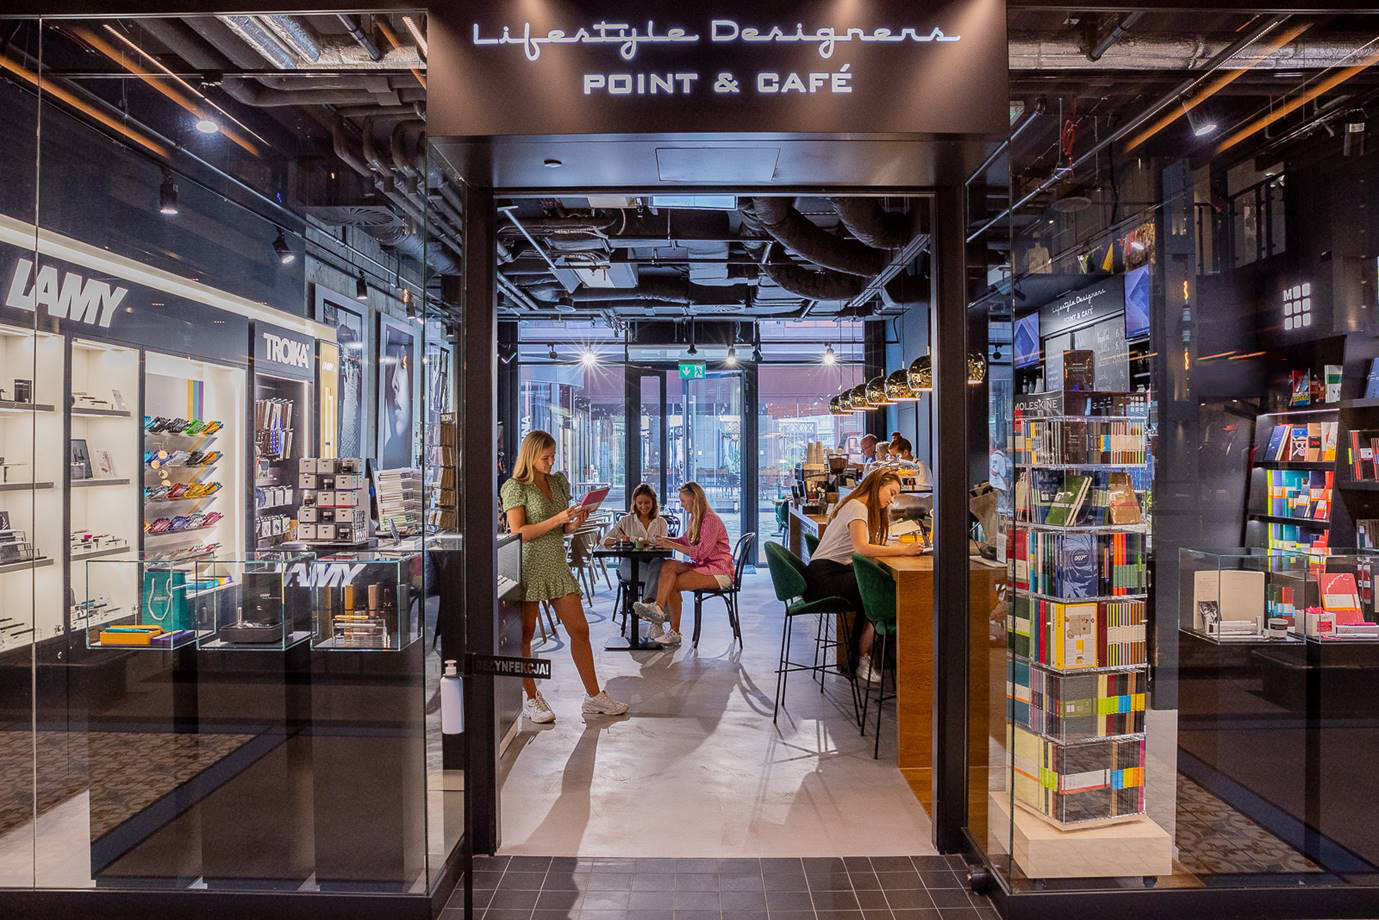 Lifestyle Designers Point & Cafe